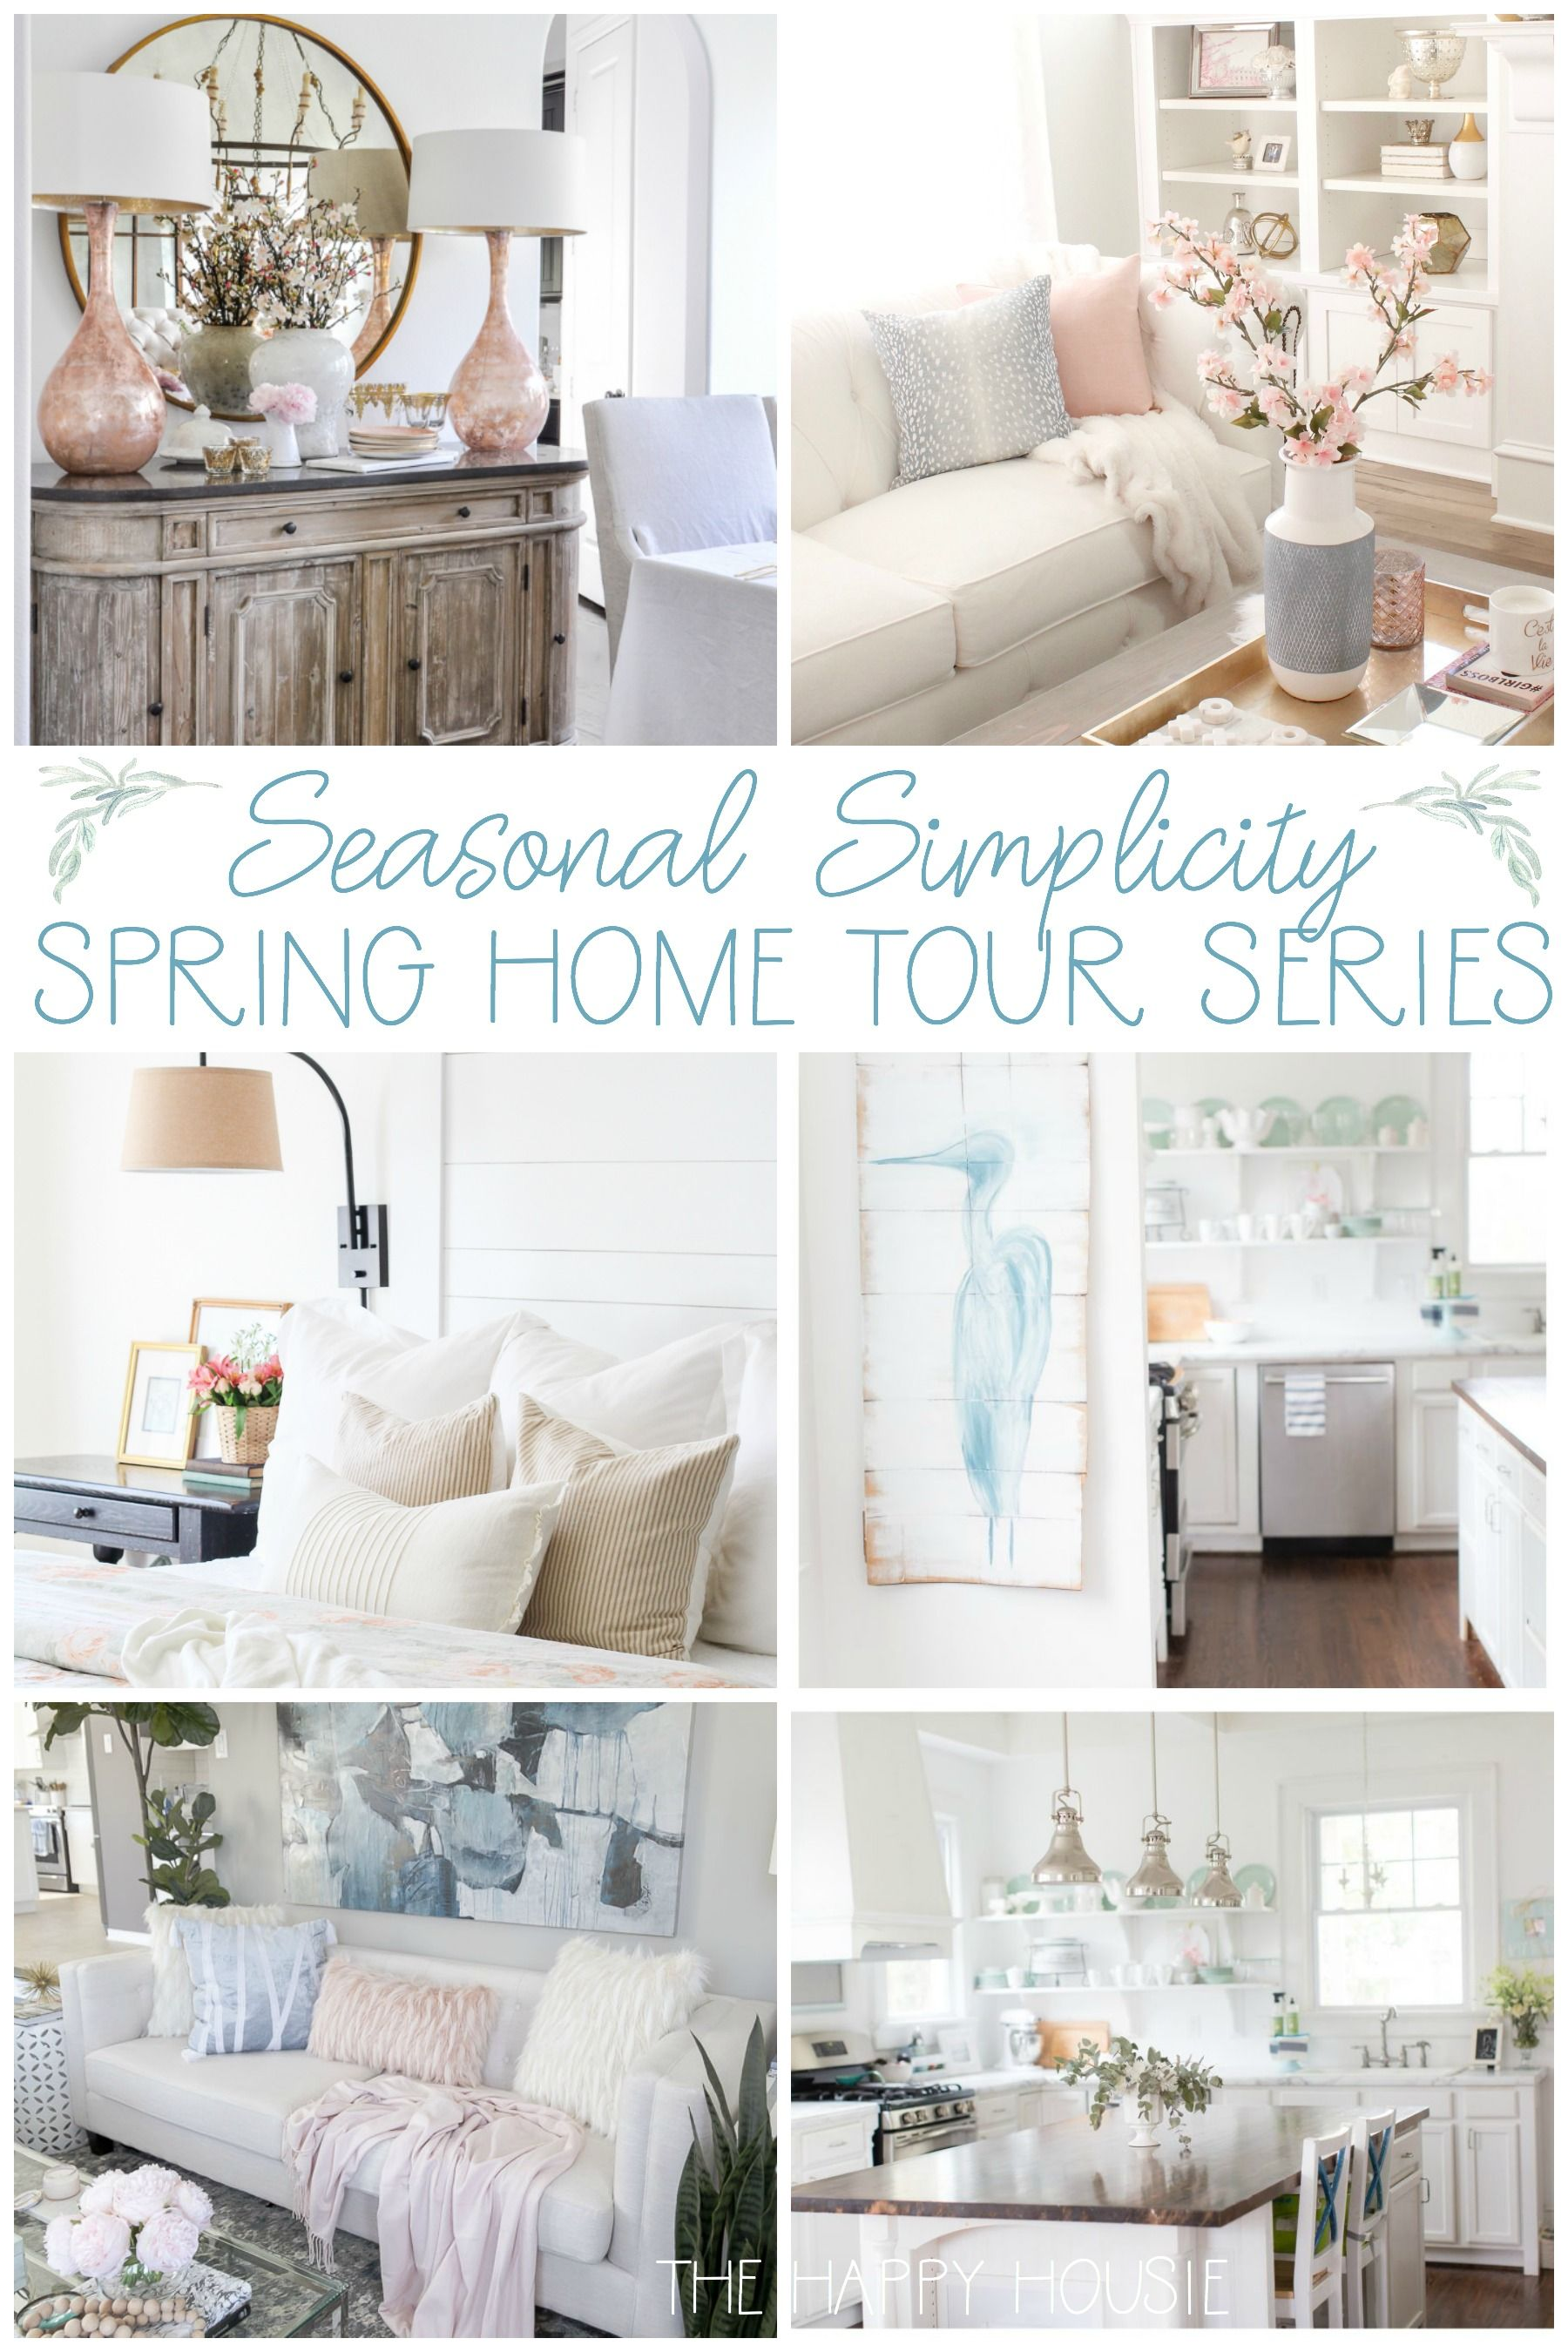 Come Join The Seasonal Simplicity Home Tour Series Seasonalsimplicity Springhomedeecor Homedecor